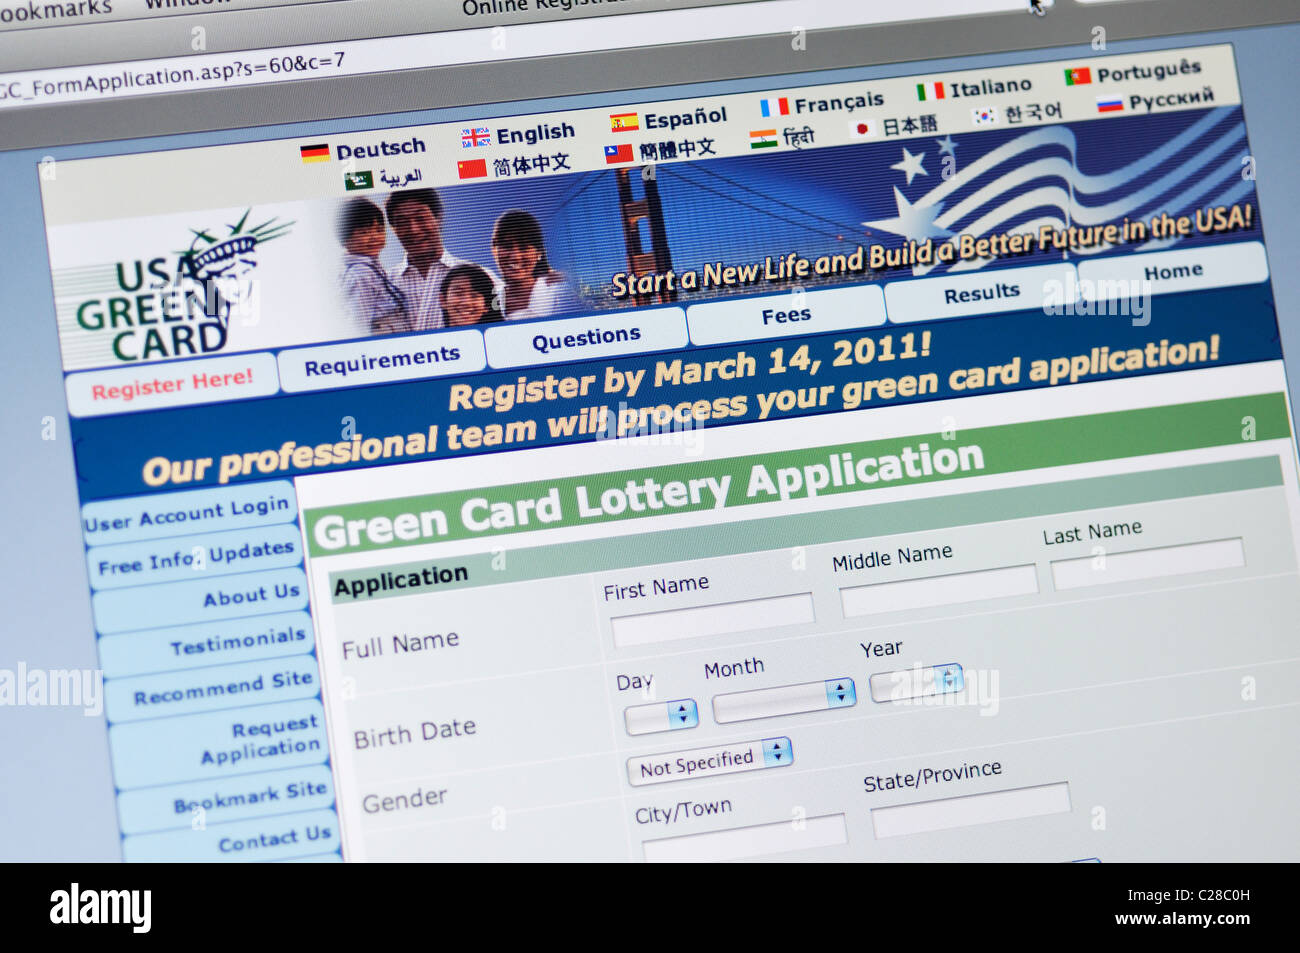 The lottery is administered by the department of state and conducted under the immigration and nationality act (ina). Usa Green Card Lottery Application Website Stock Photo Alamy